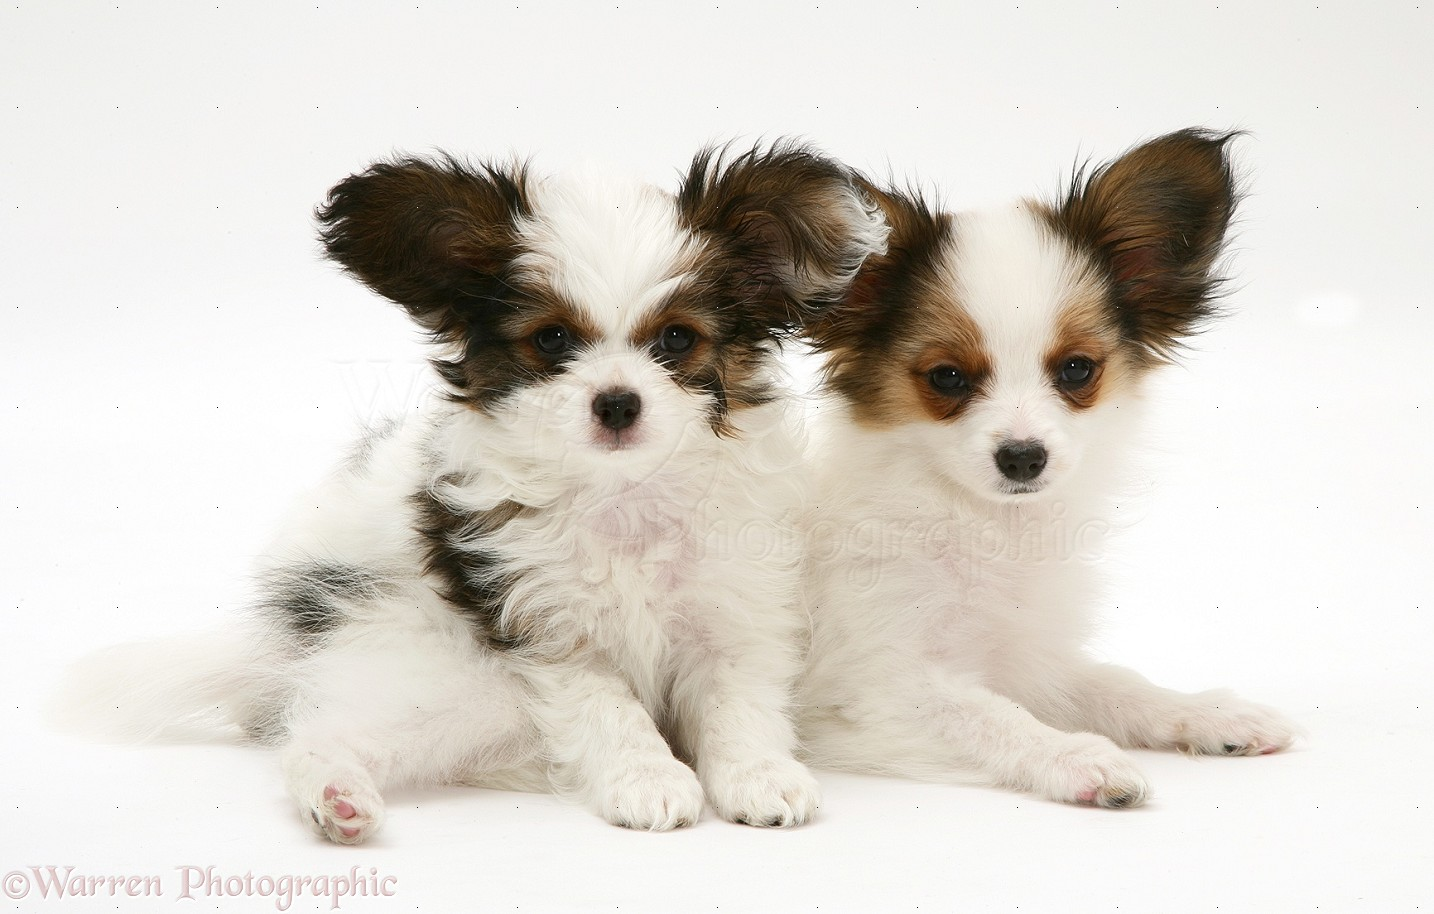 Cute Armant Puppies: Cute Lifeonbellair Breed